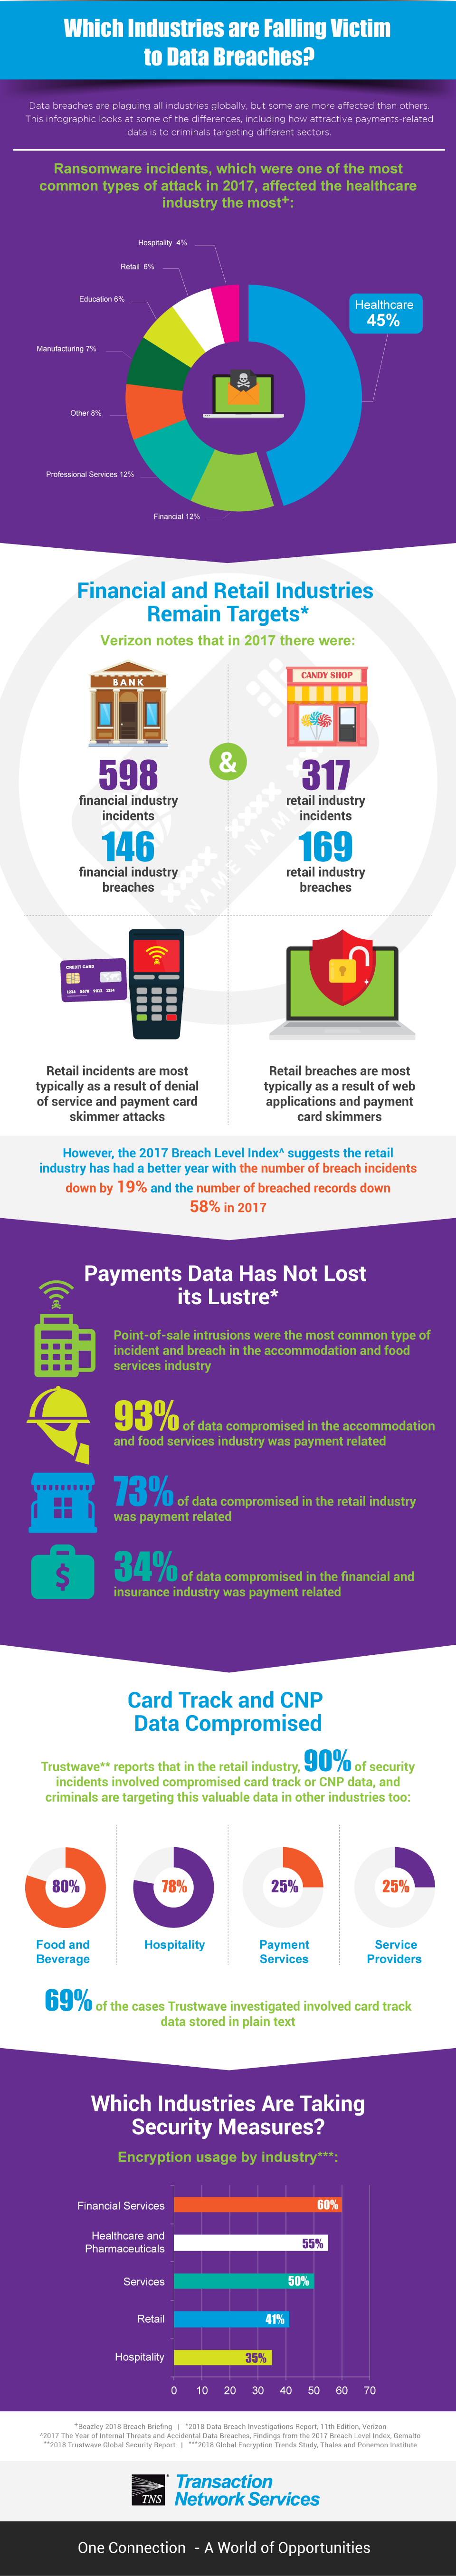 Which Industries are Falling Victim to Data Breaches?